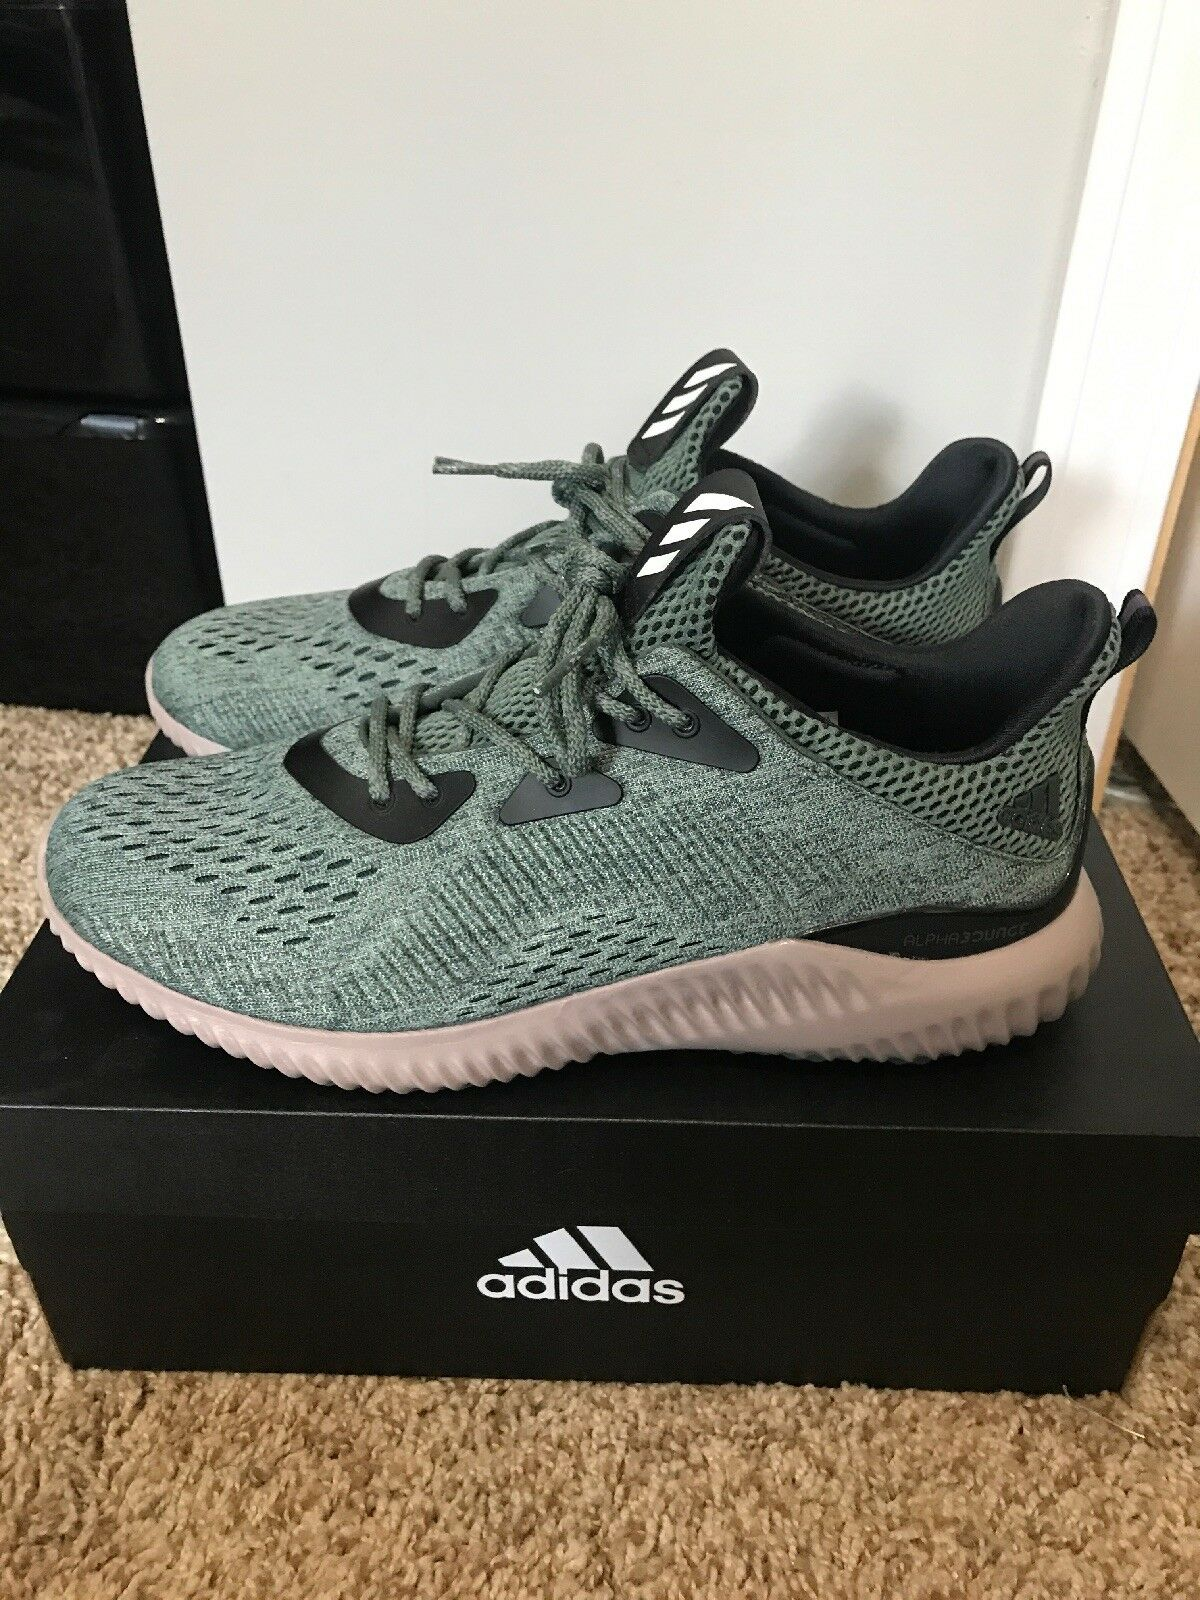 NEW Adidas Alphabounce Running shoes Men's 8.5 with original box Ultraboost NMD